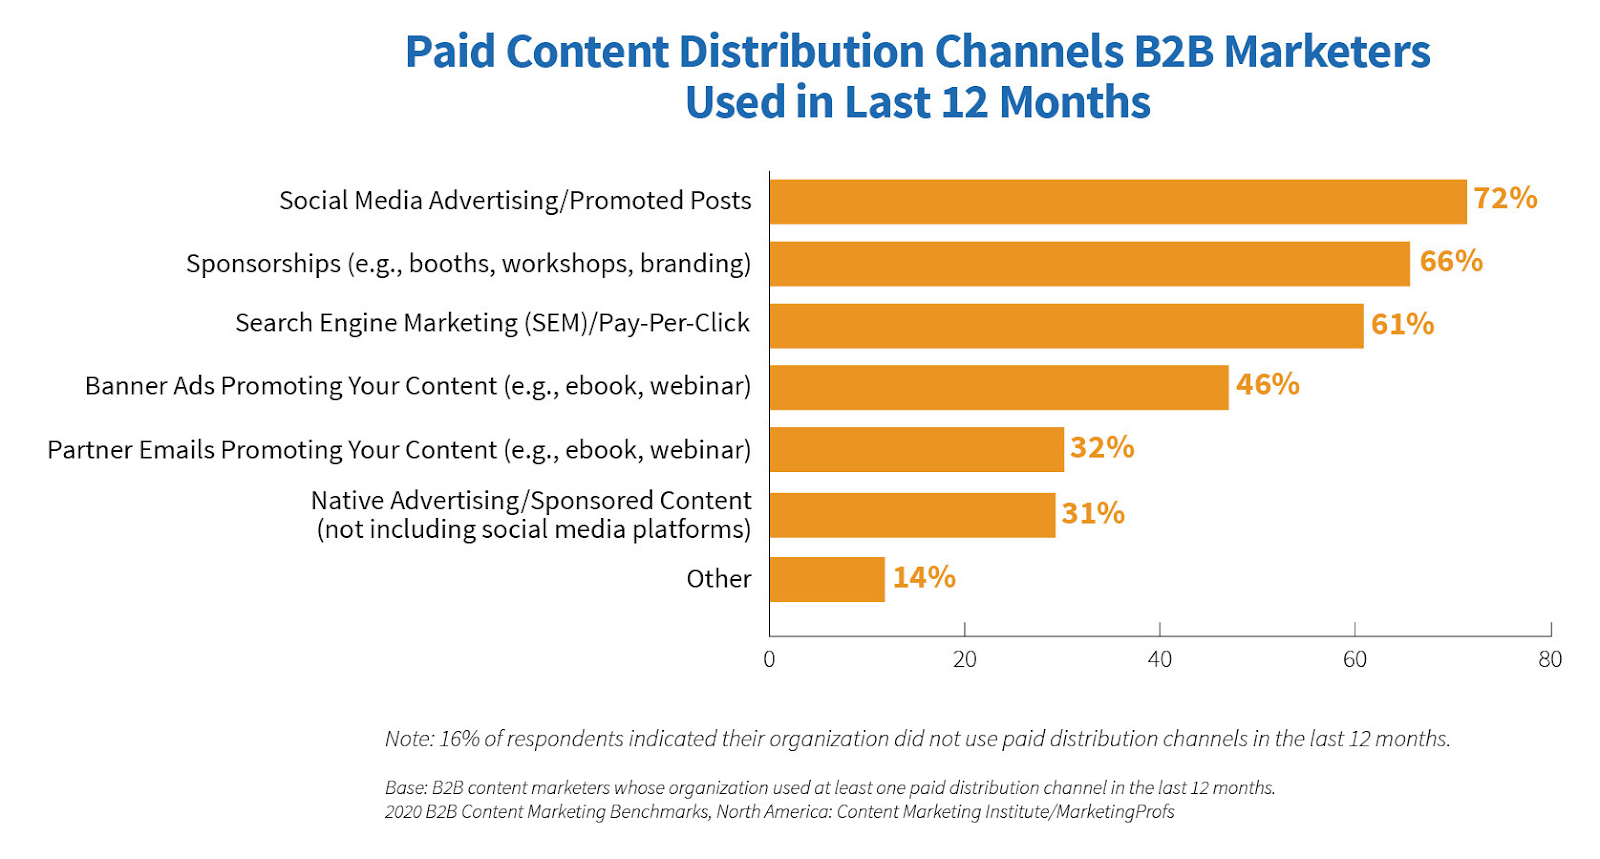 Paid content distribution channels used in the last 12 months